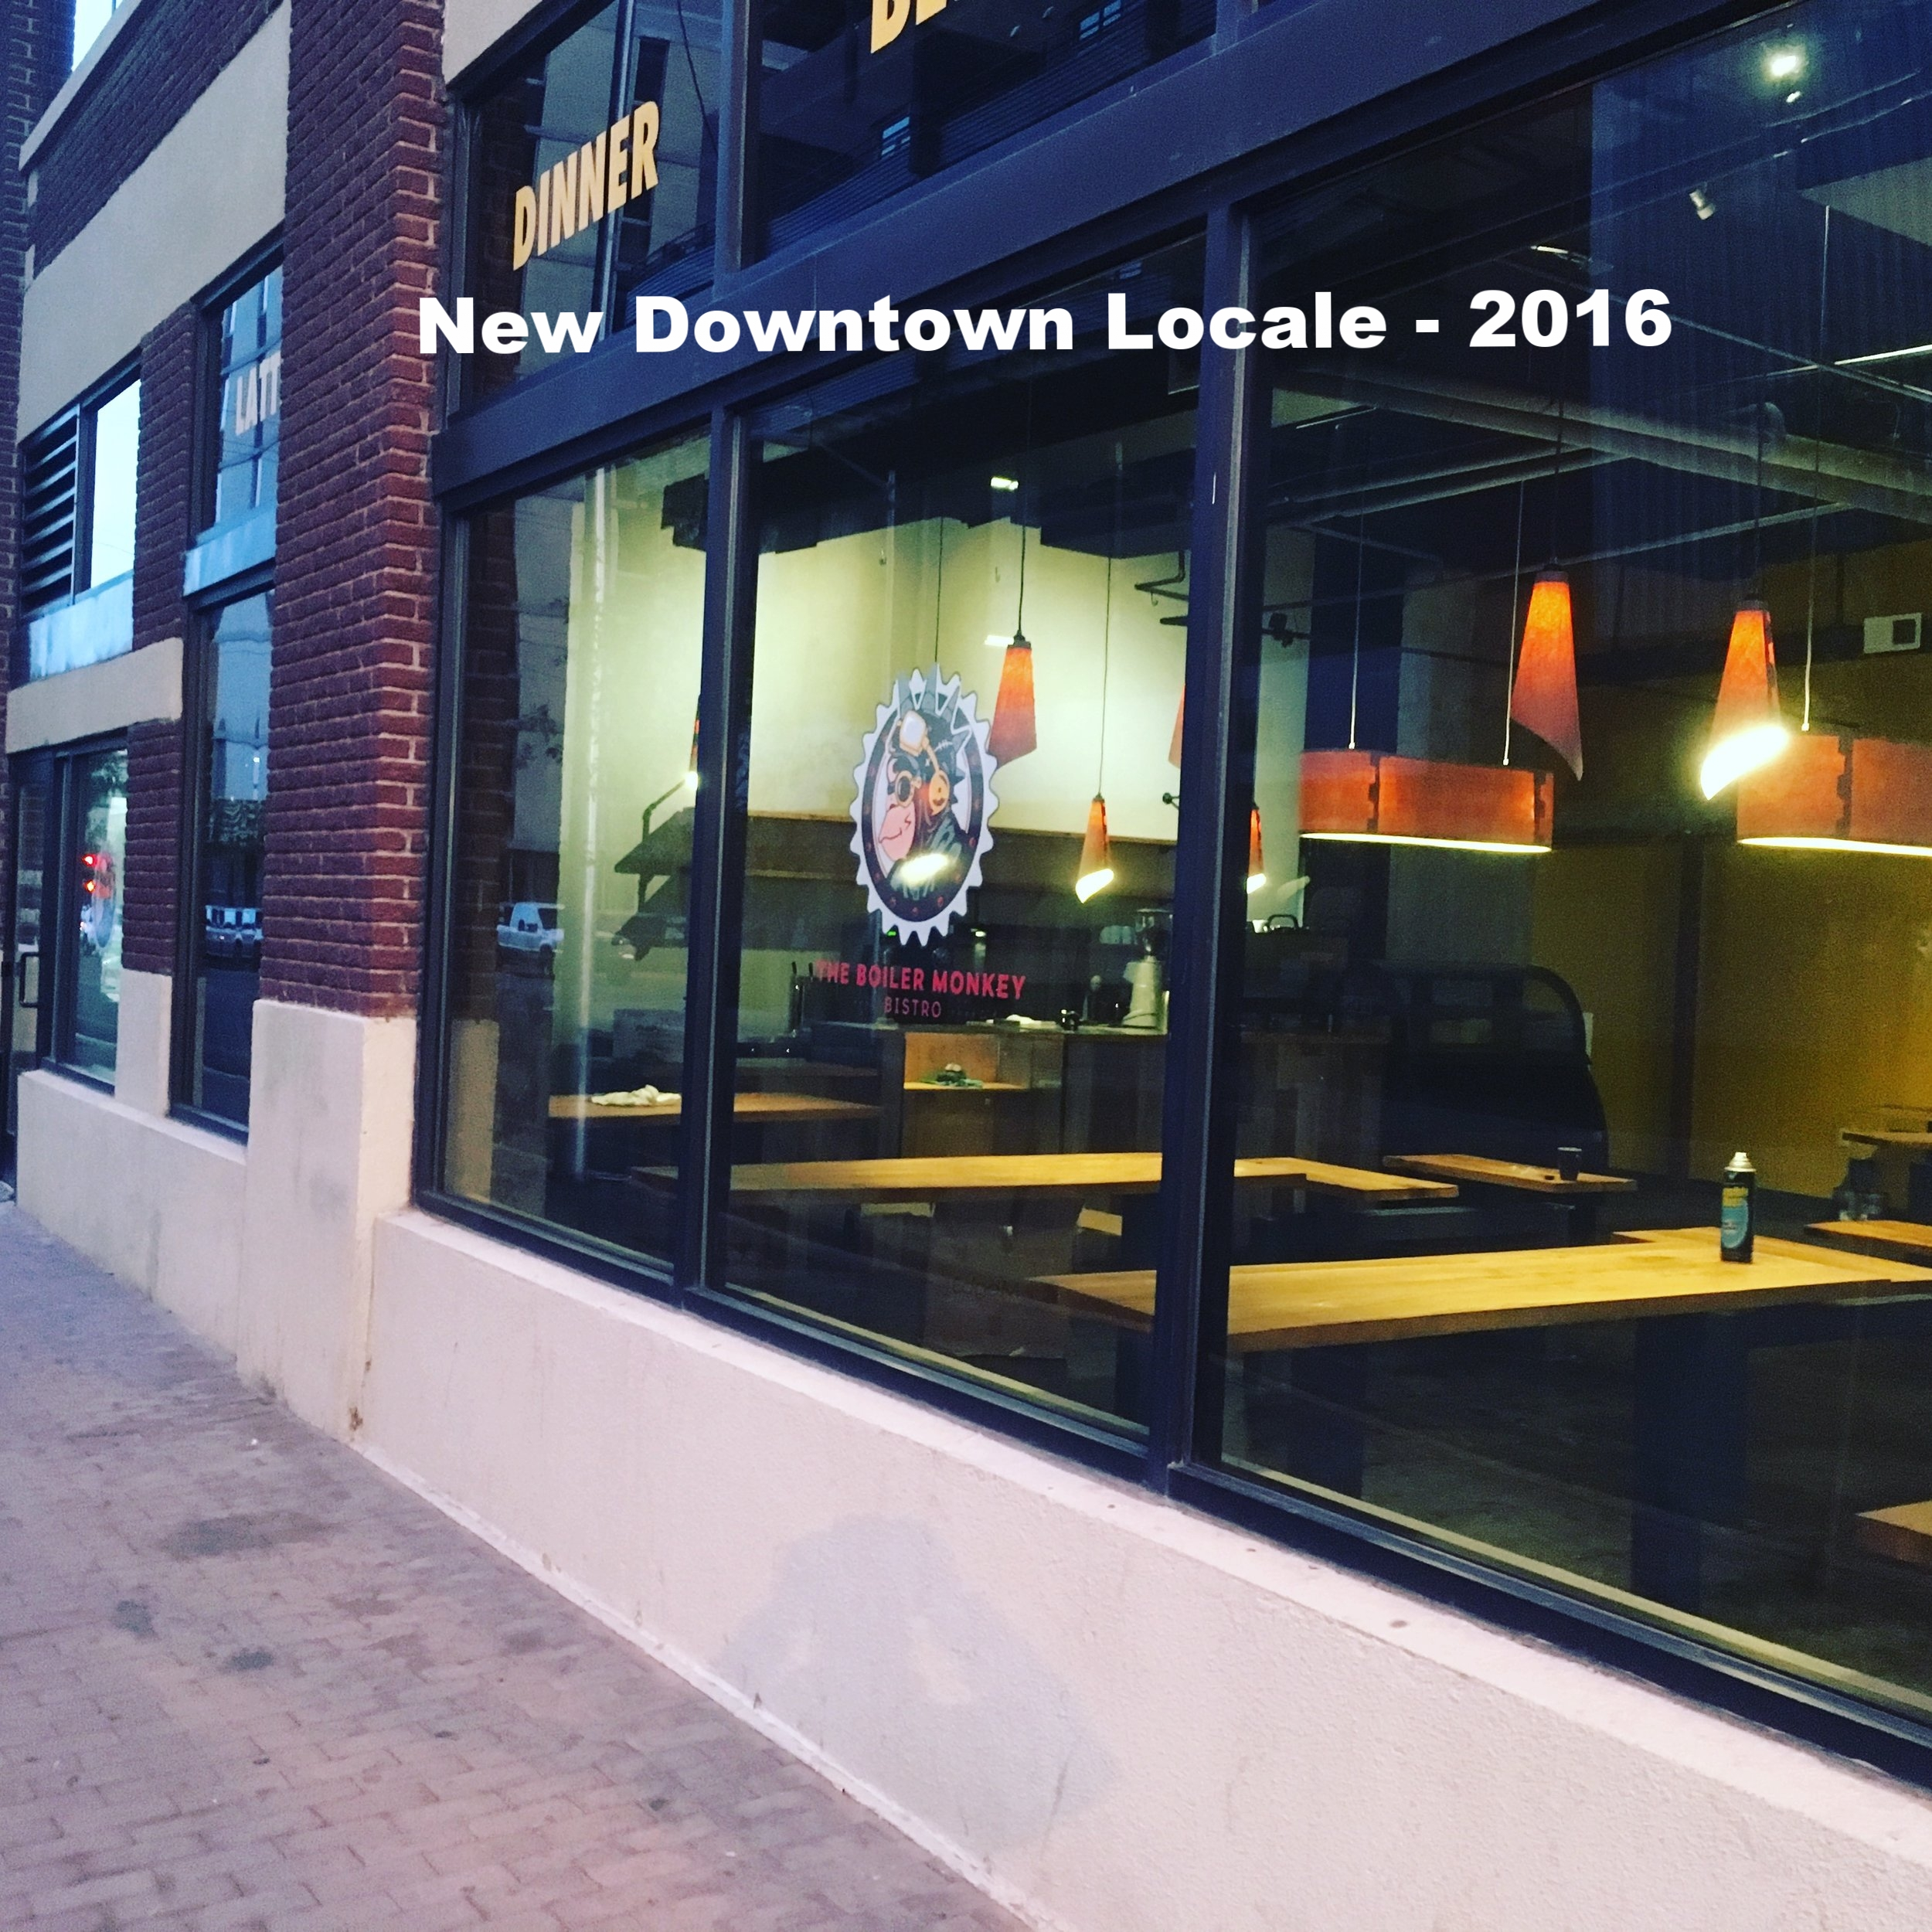 New Downtown Locale - 2016